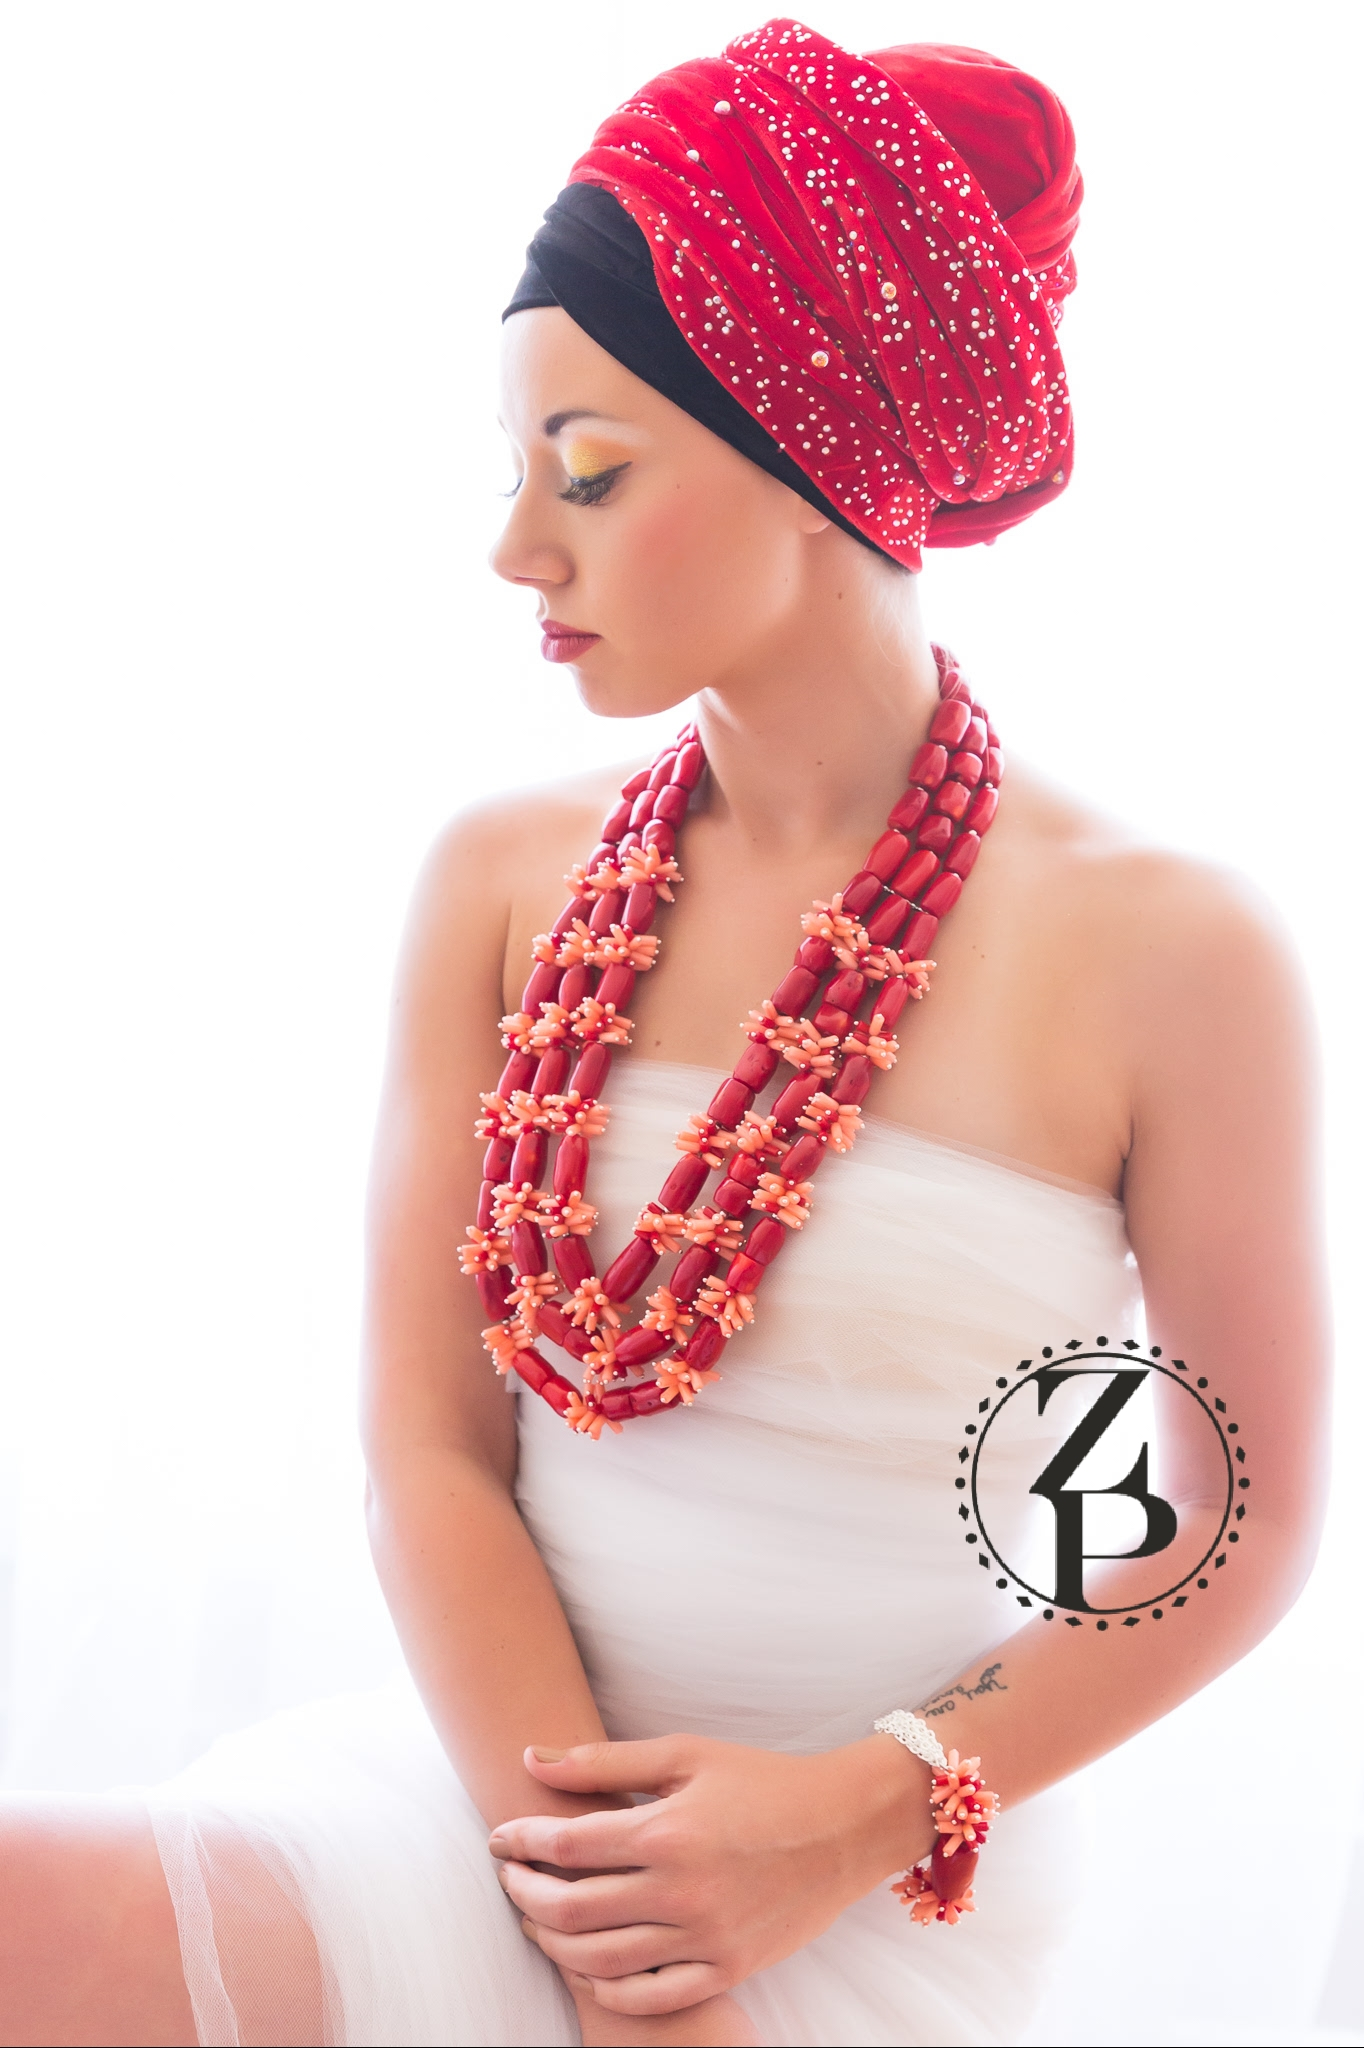 zuri-perle-nigerian-wedding-jewelry-handcrafted-bridal-red-coral-jewelry.jpg